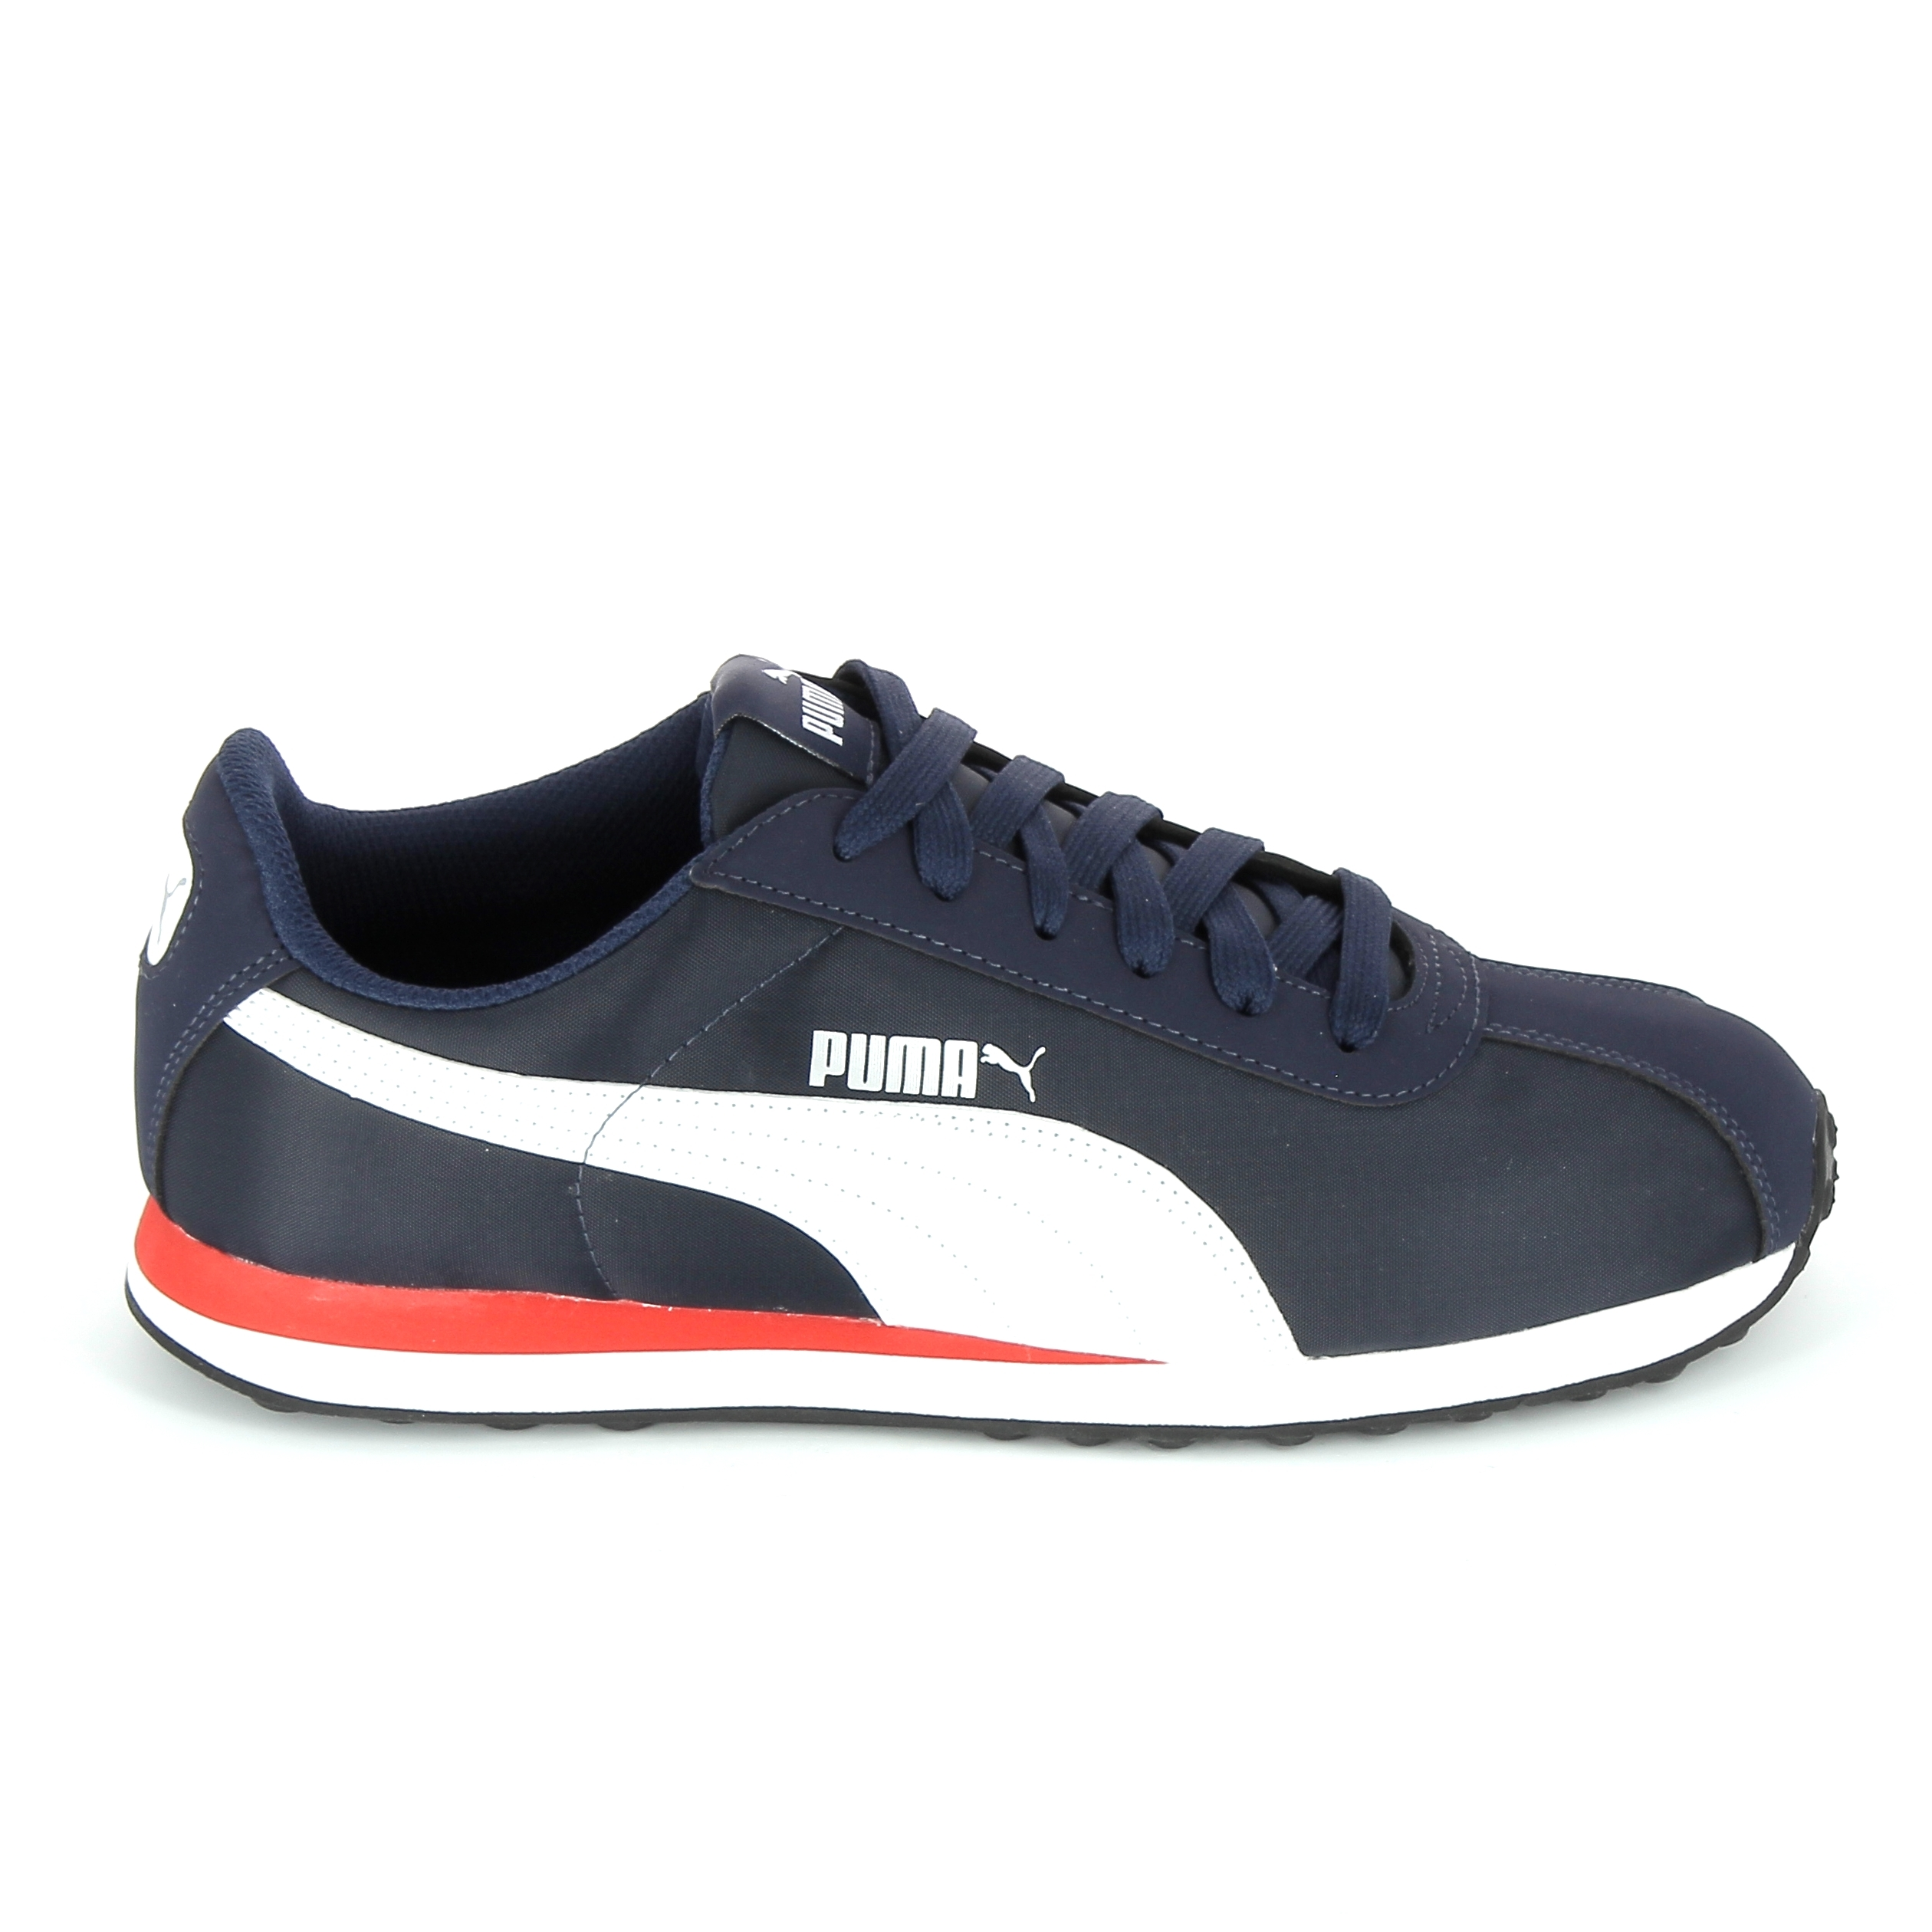 chaussures de sport 901bb 701f8 Basket mode, SneakerBasket mode - Sneakers PUMA Turin NL Marine